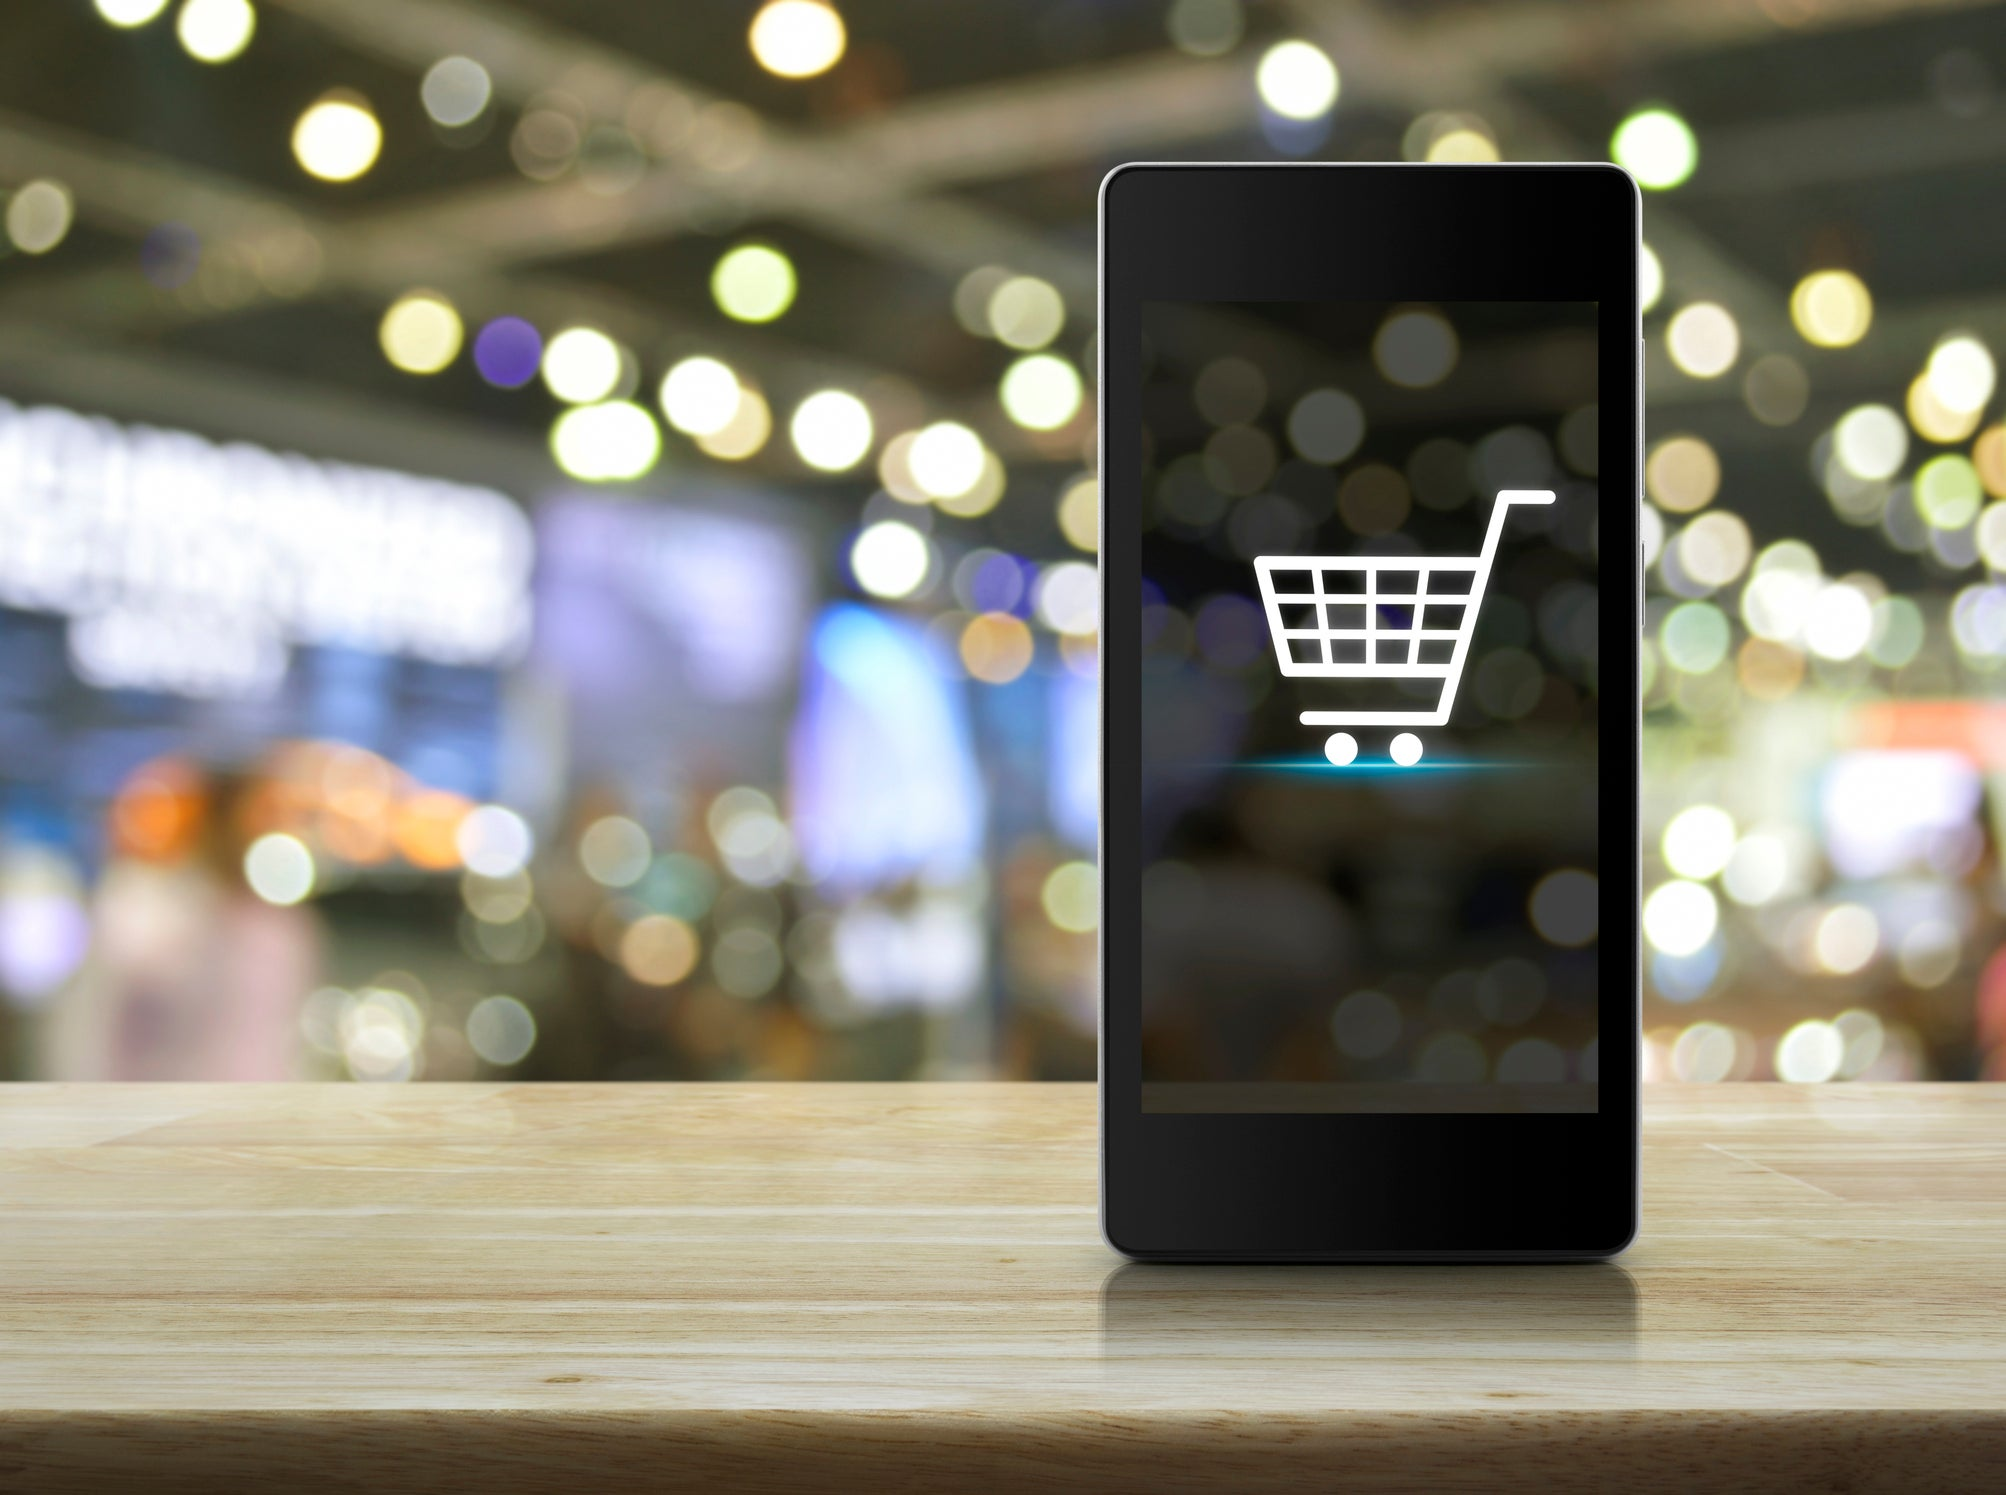 A shopping cart icon on a mobile phone.